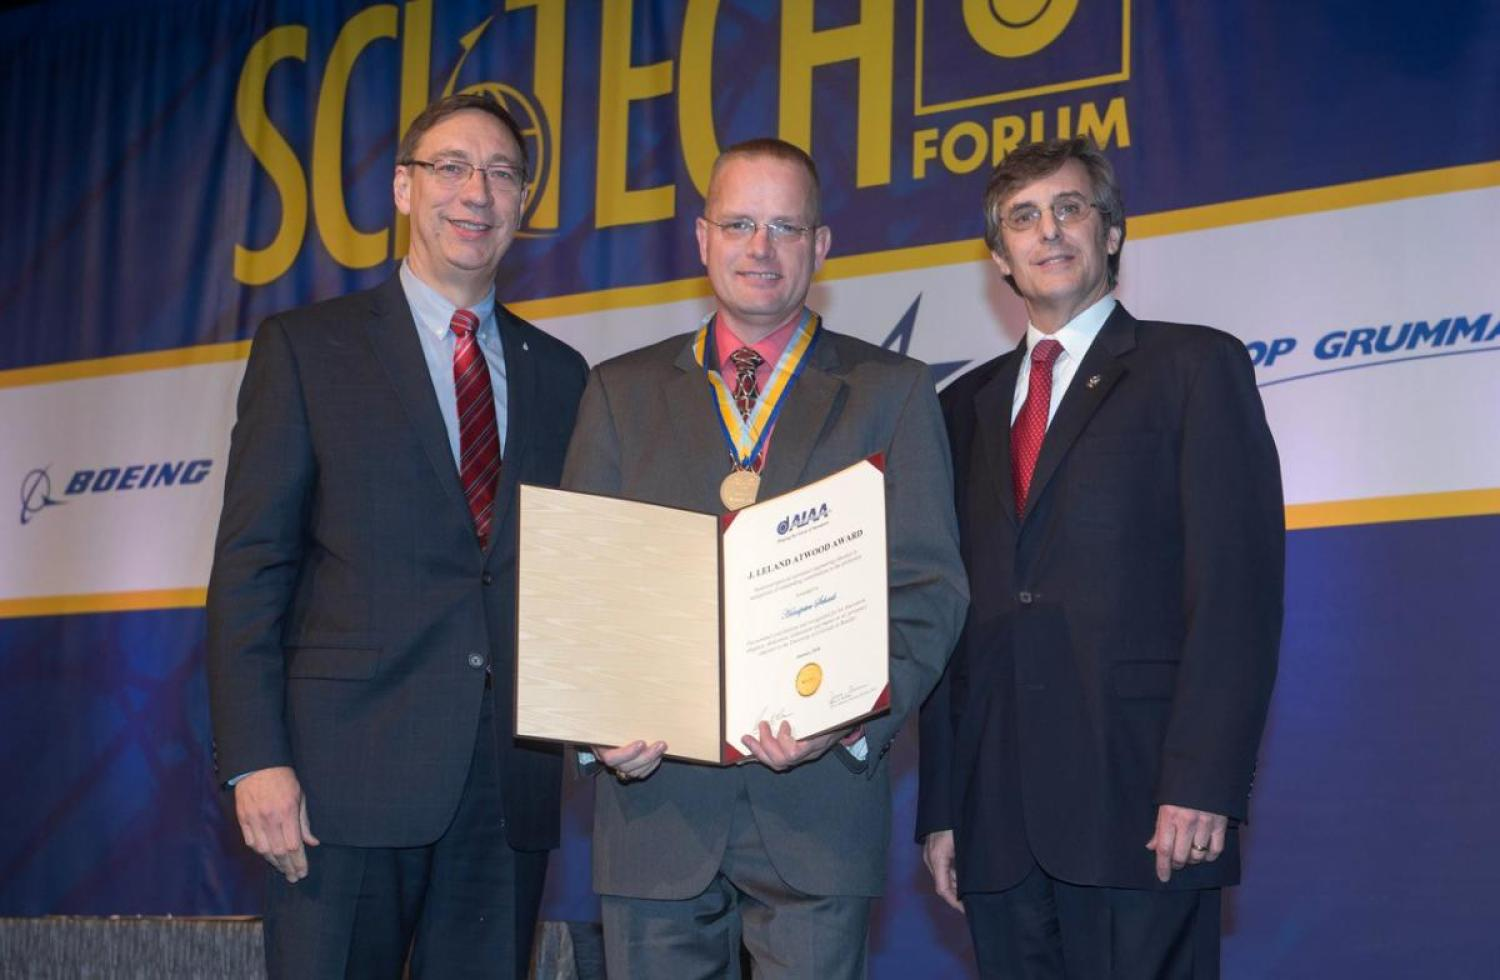 Hanspeter Schaub receiving the J. Leland Atwood Award